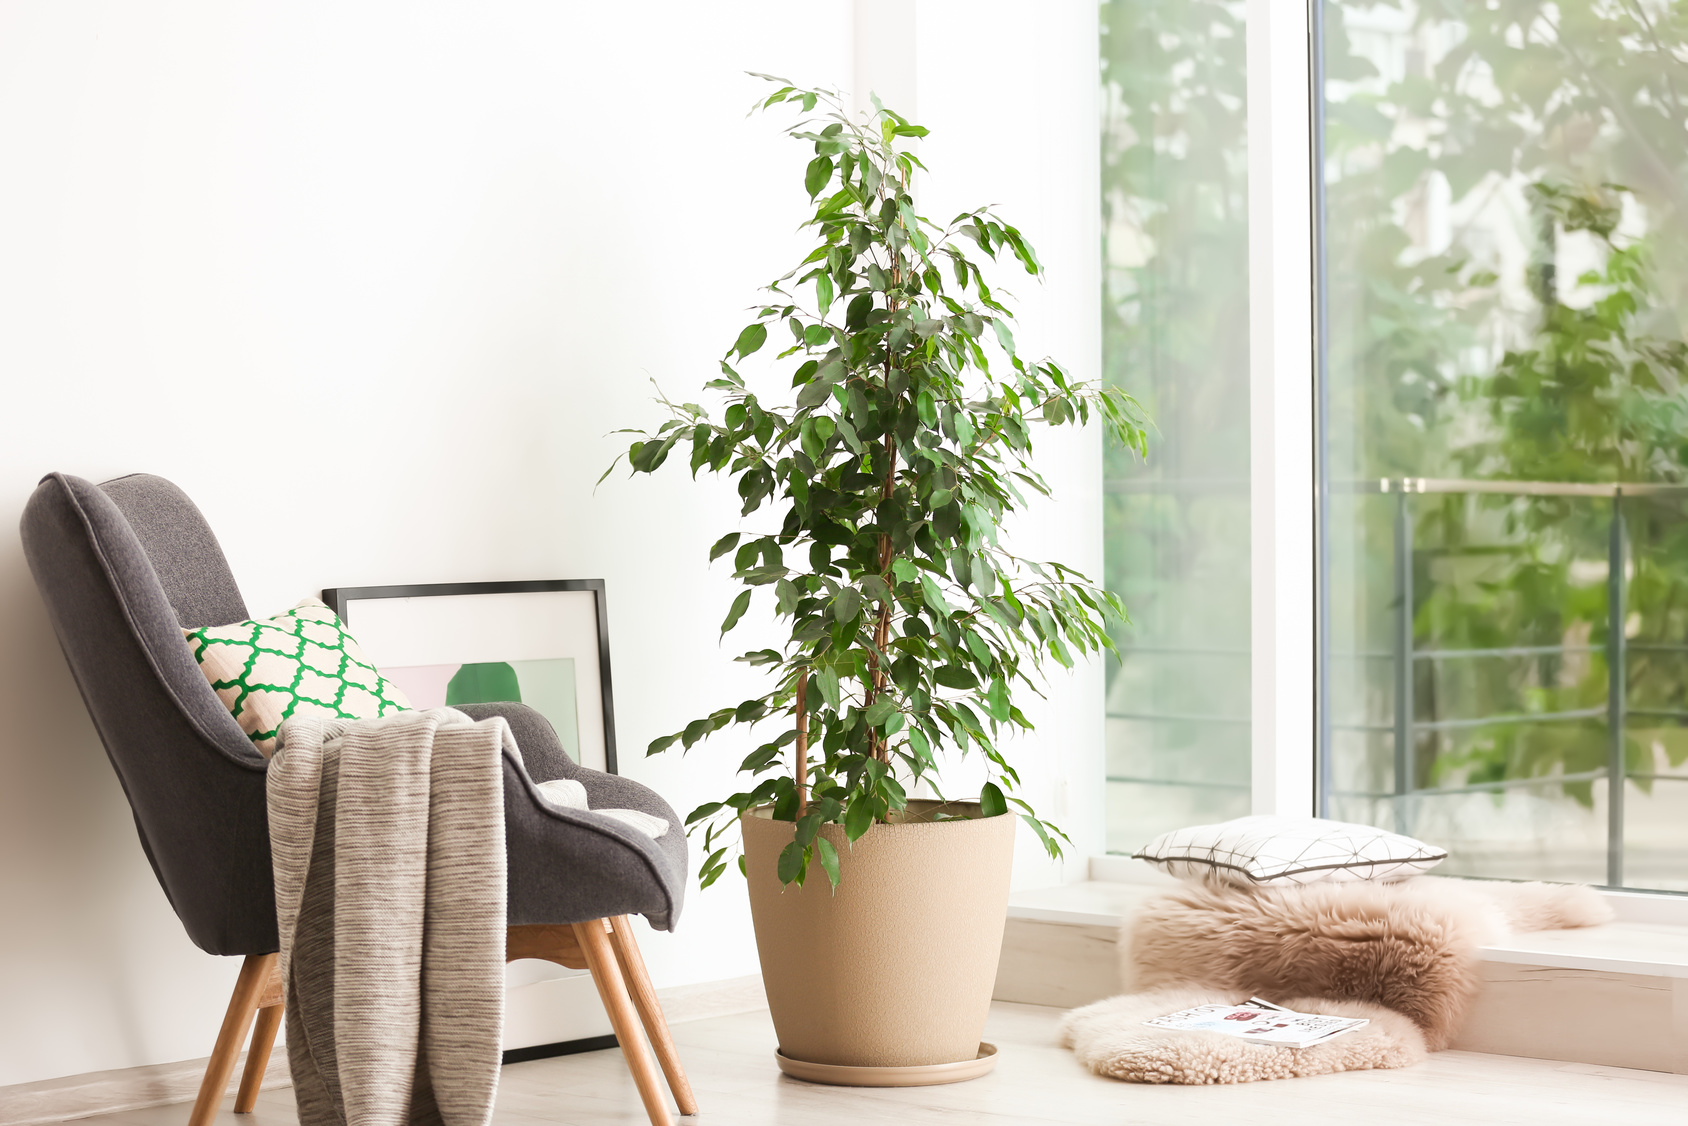 Pot with ficus near large window in living room